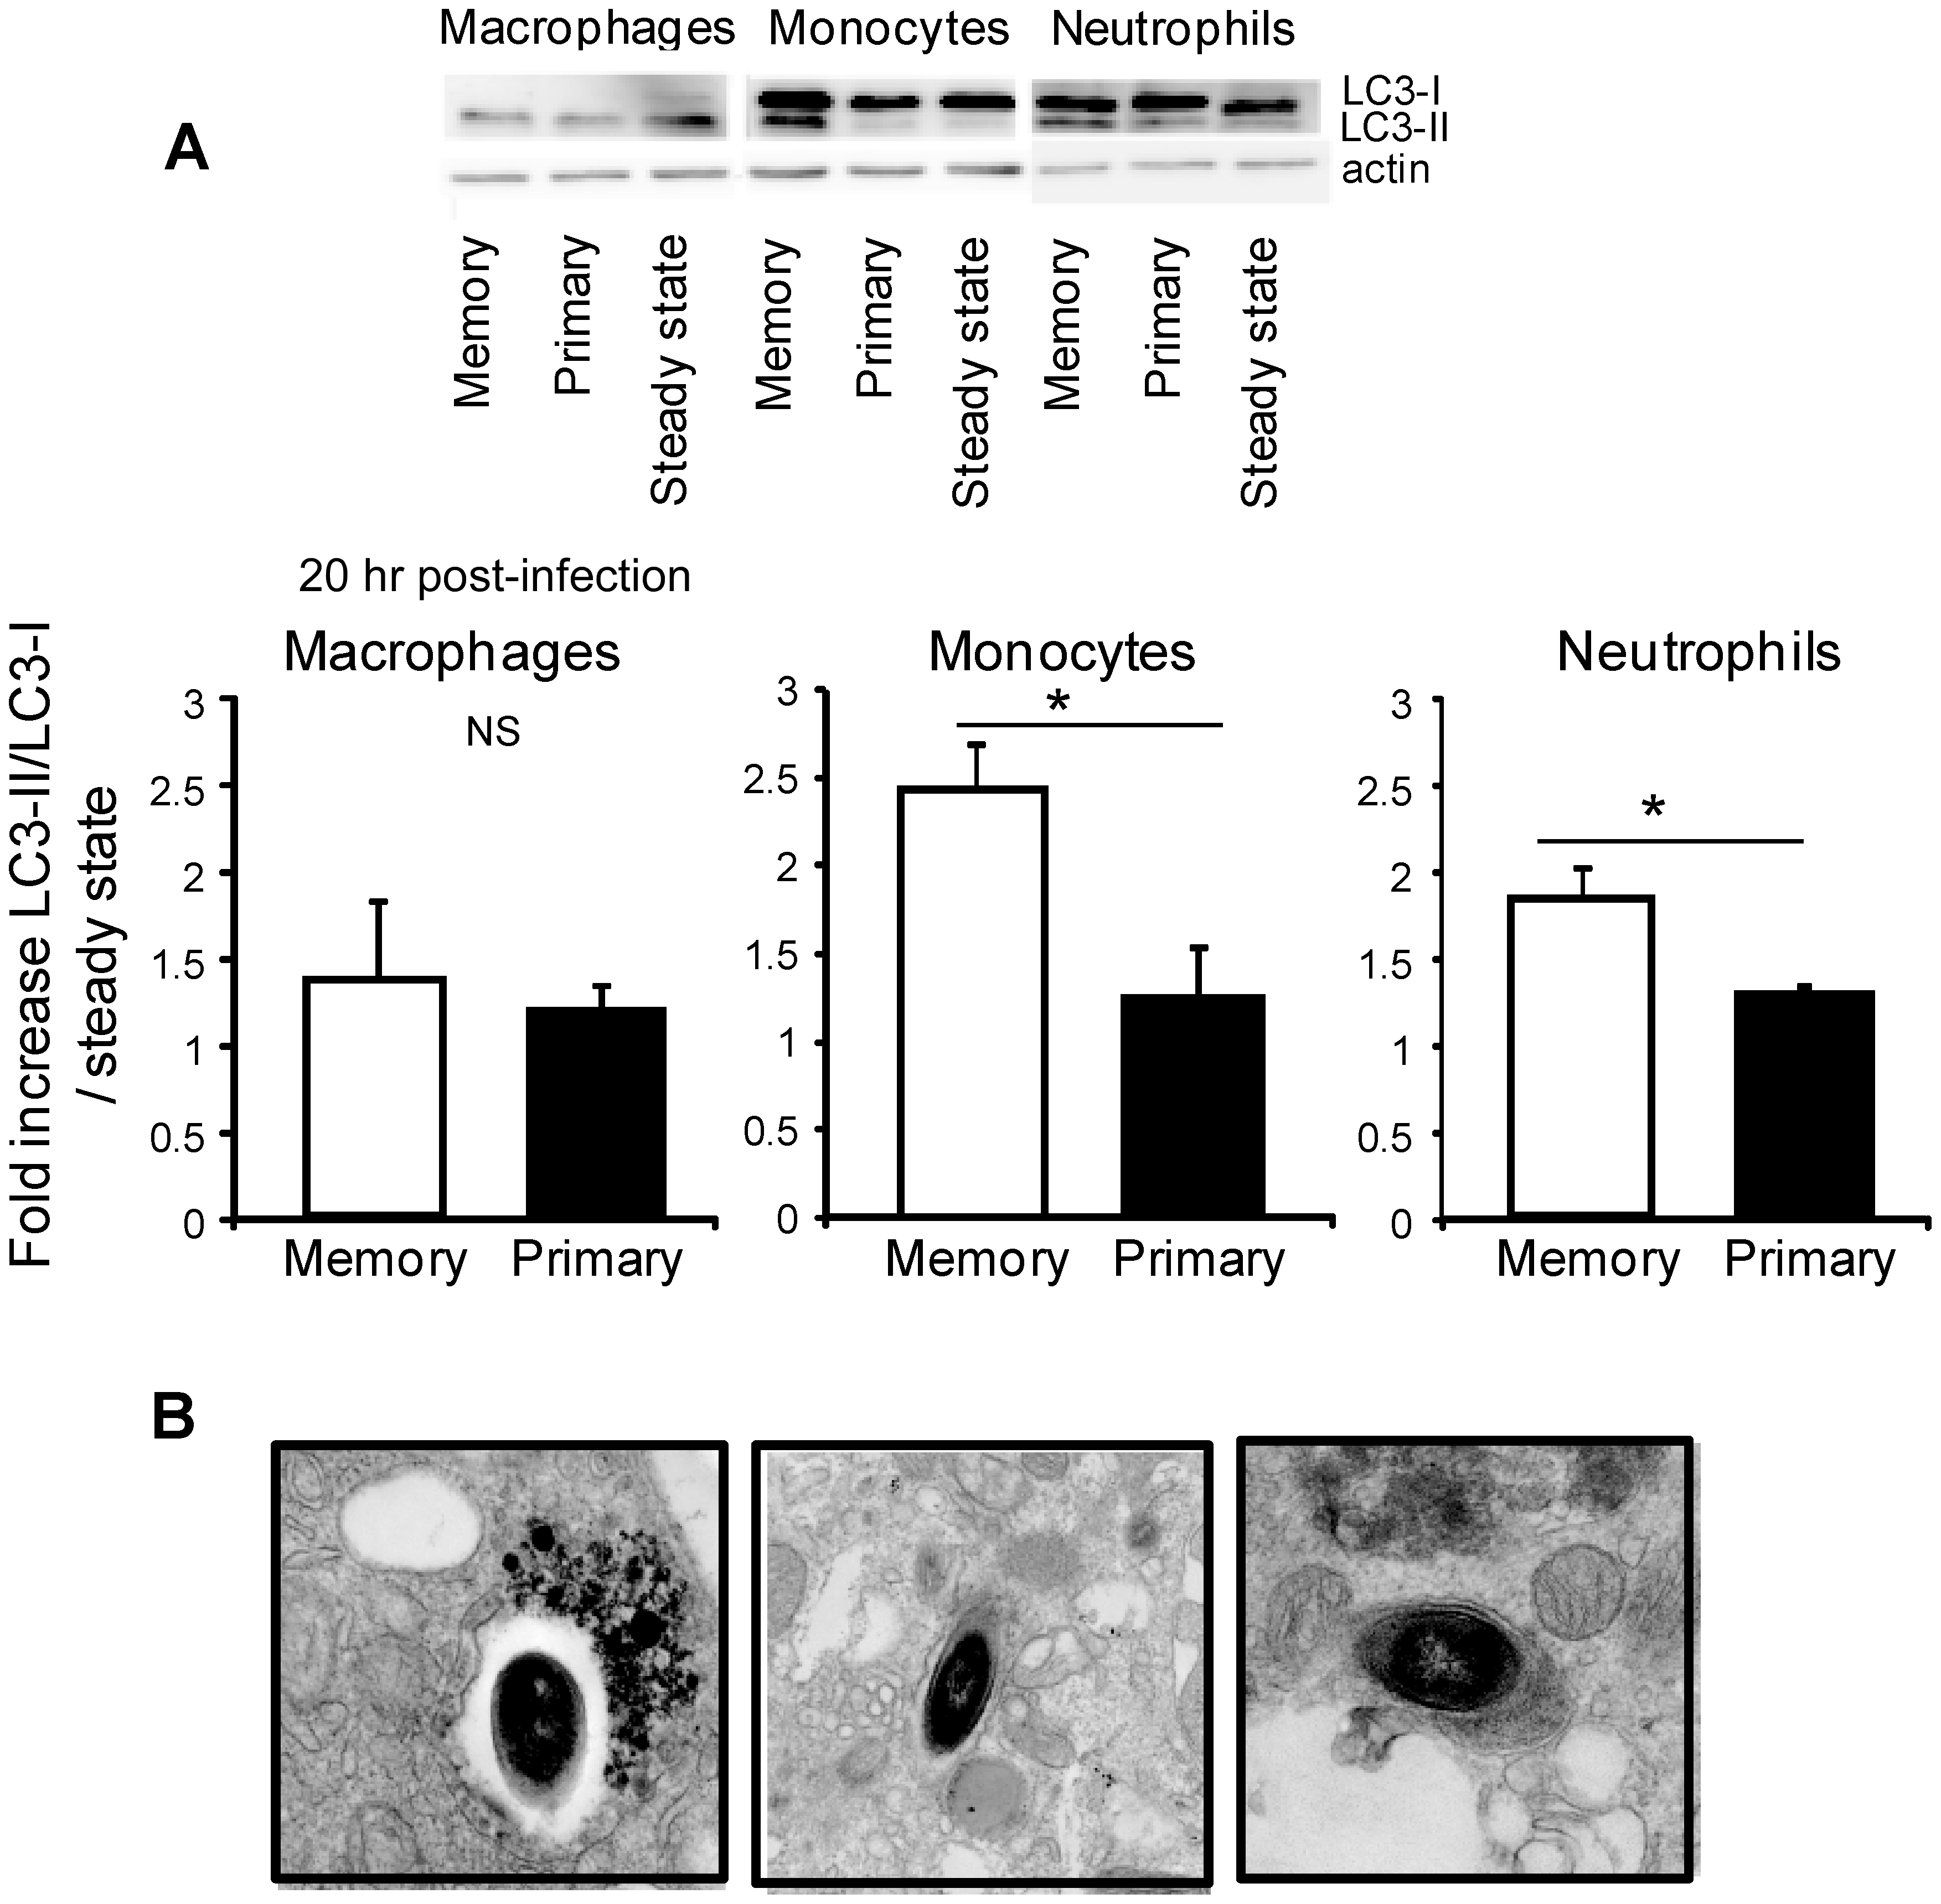 The reactive oxygen species generated inside inflammatory monocytes and neutrophils from memory mice induce autophagy.